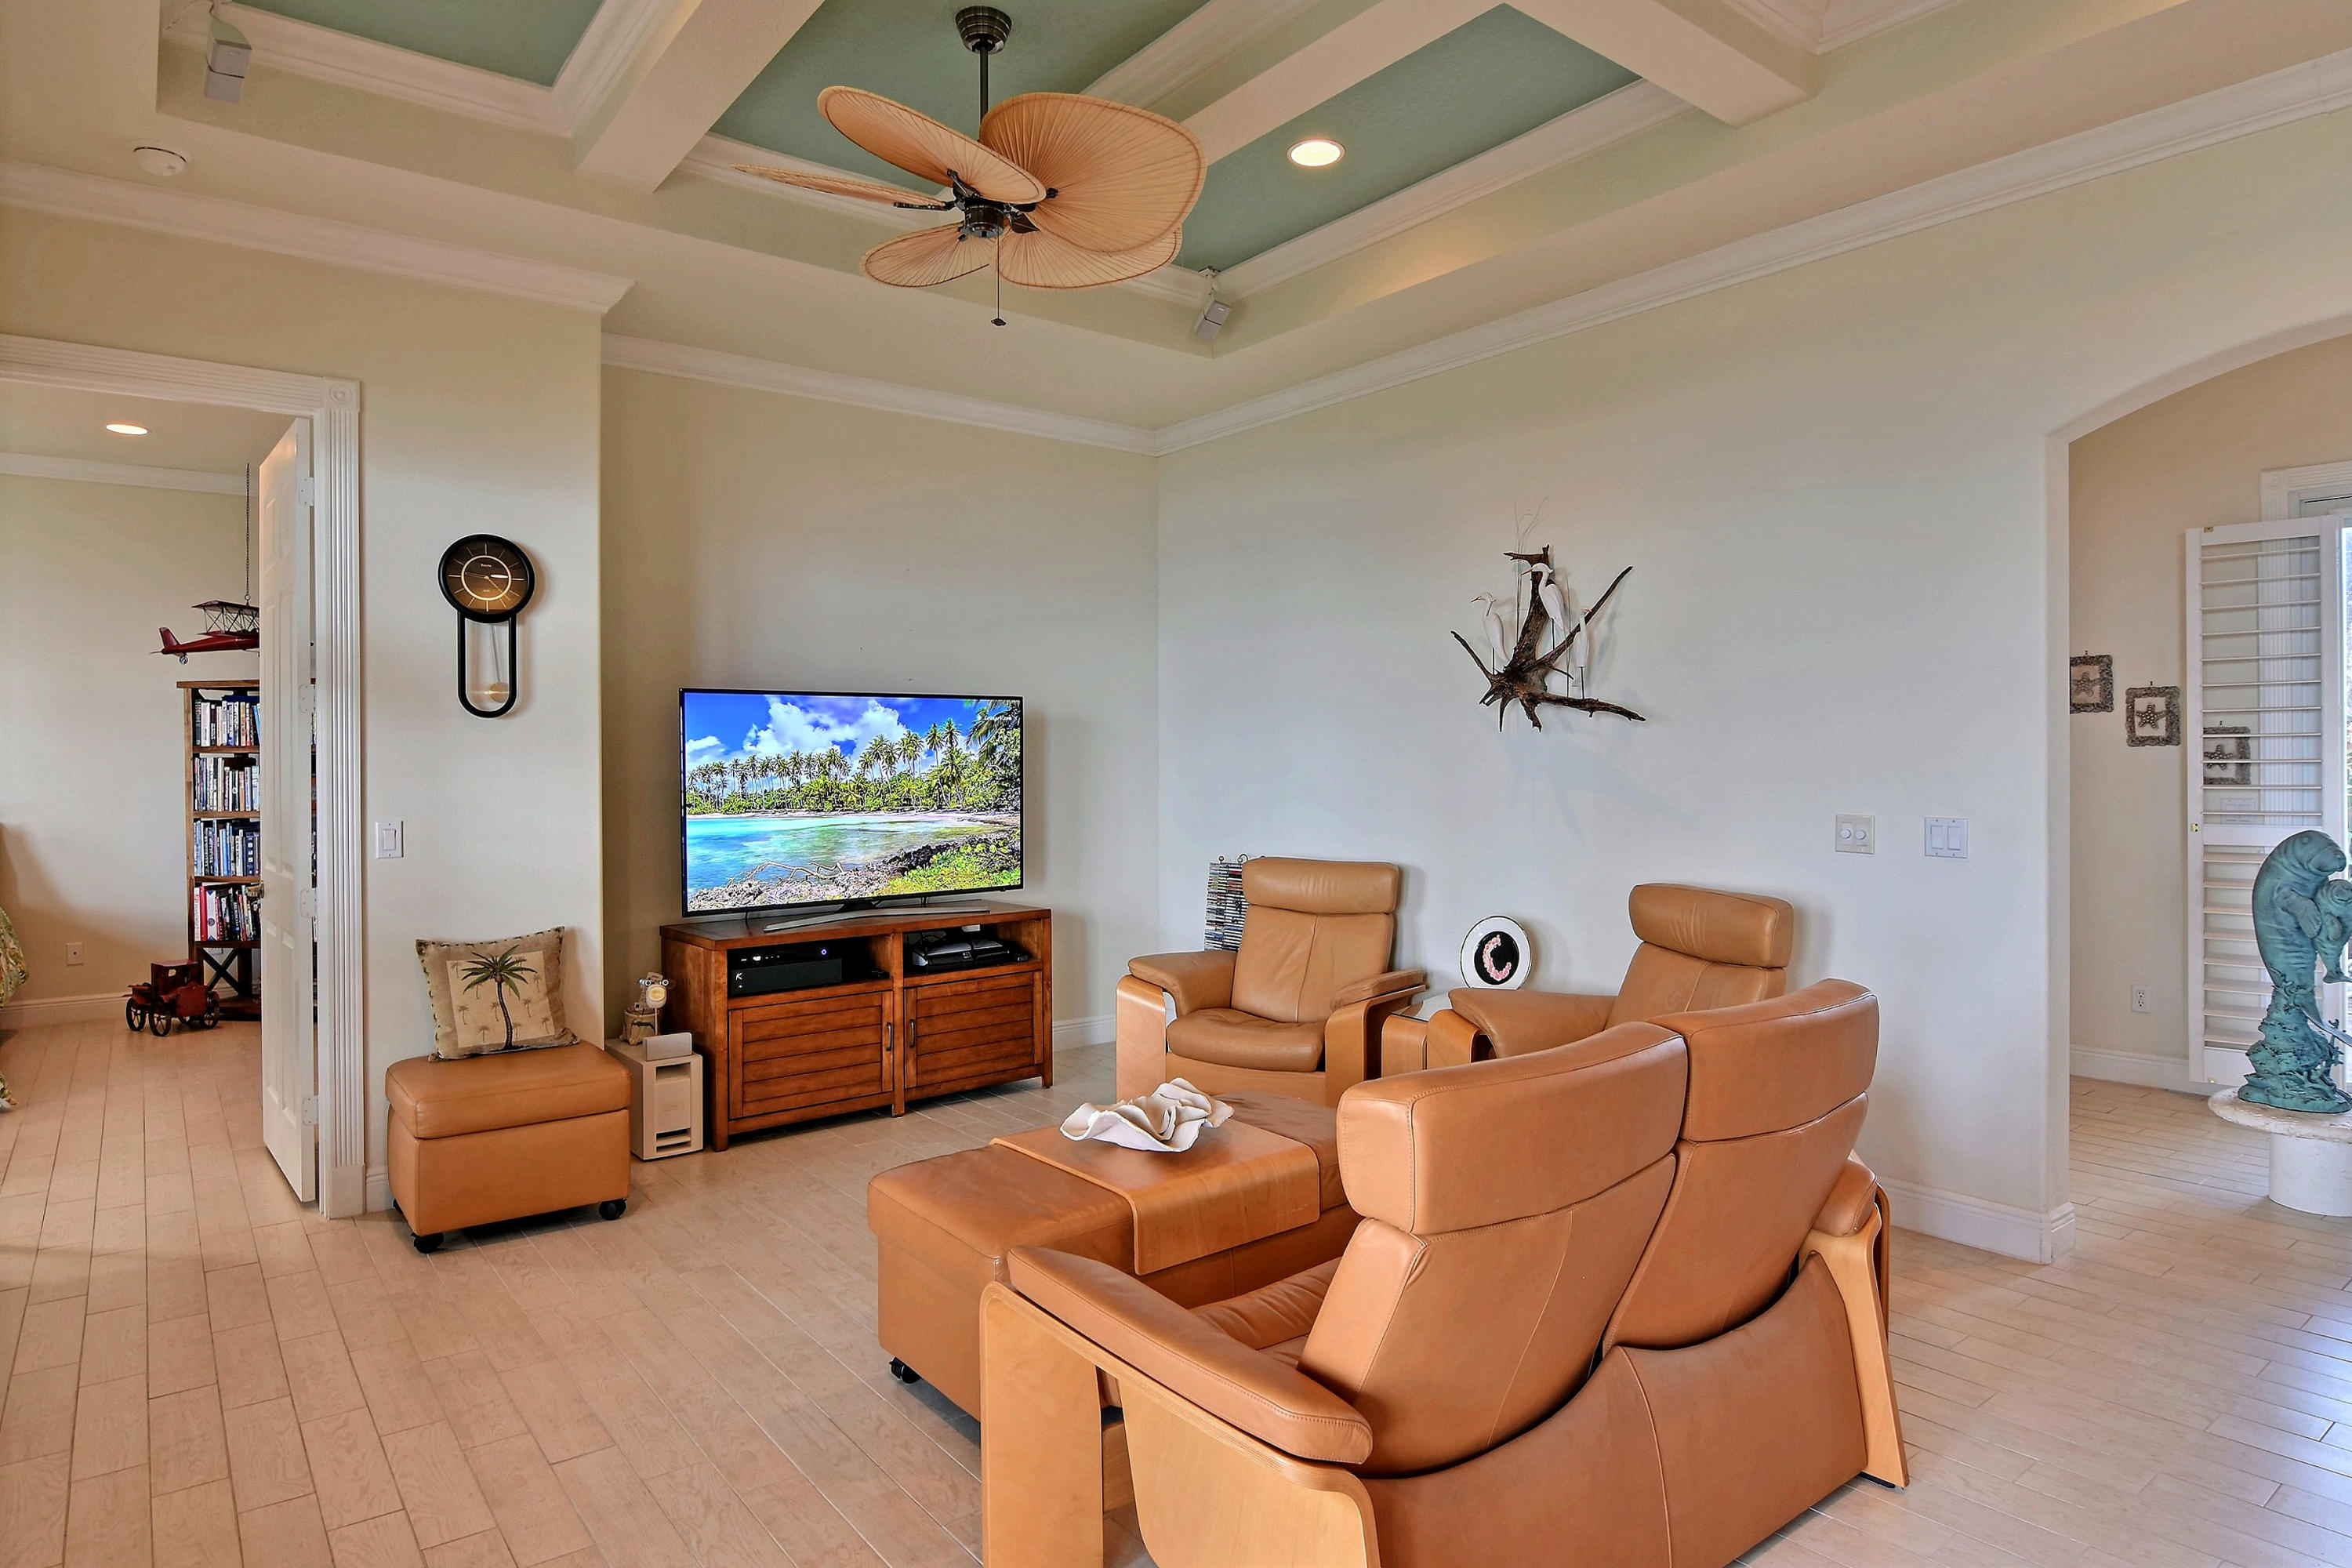 RIVERSIDE SUBDIVISION REALTY